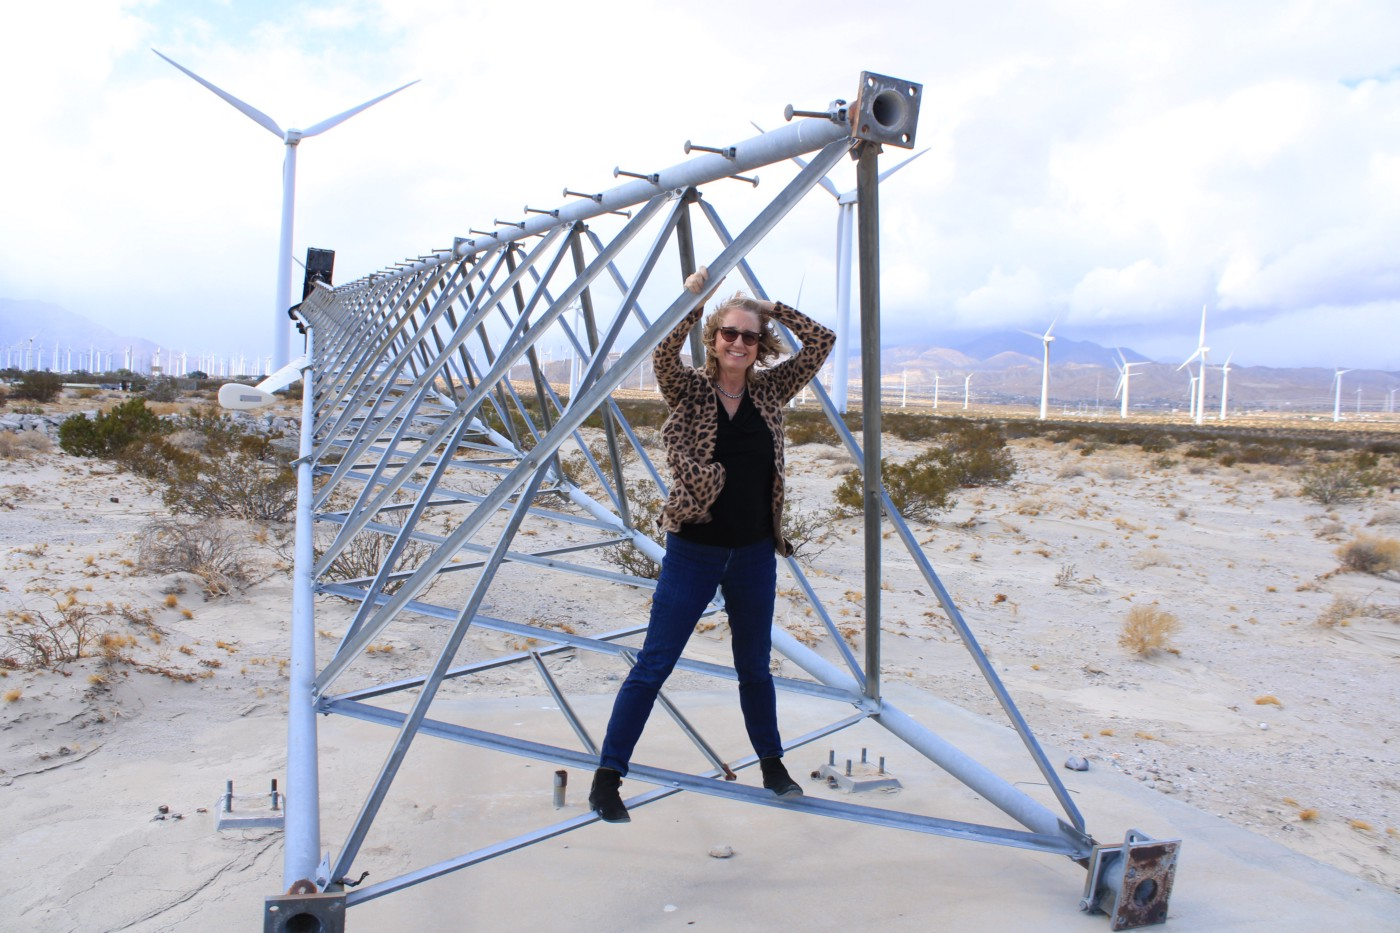 Image of author standing in triangular-shaped stand for windmill